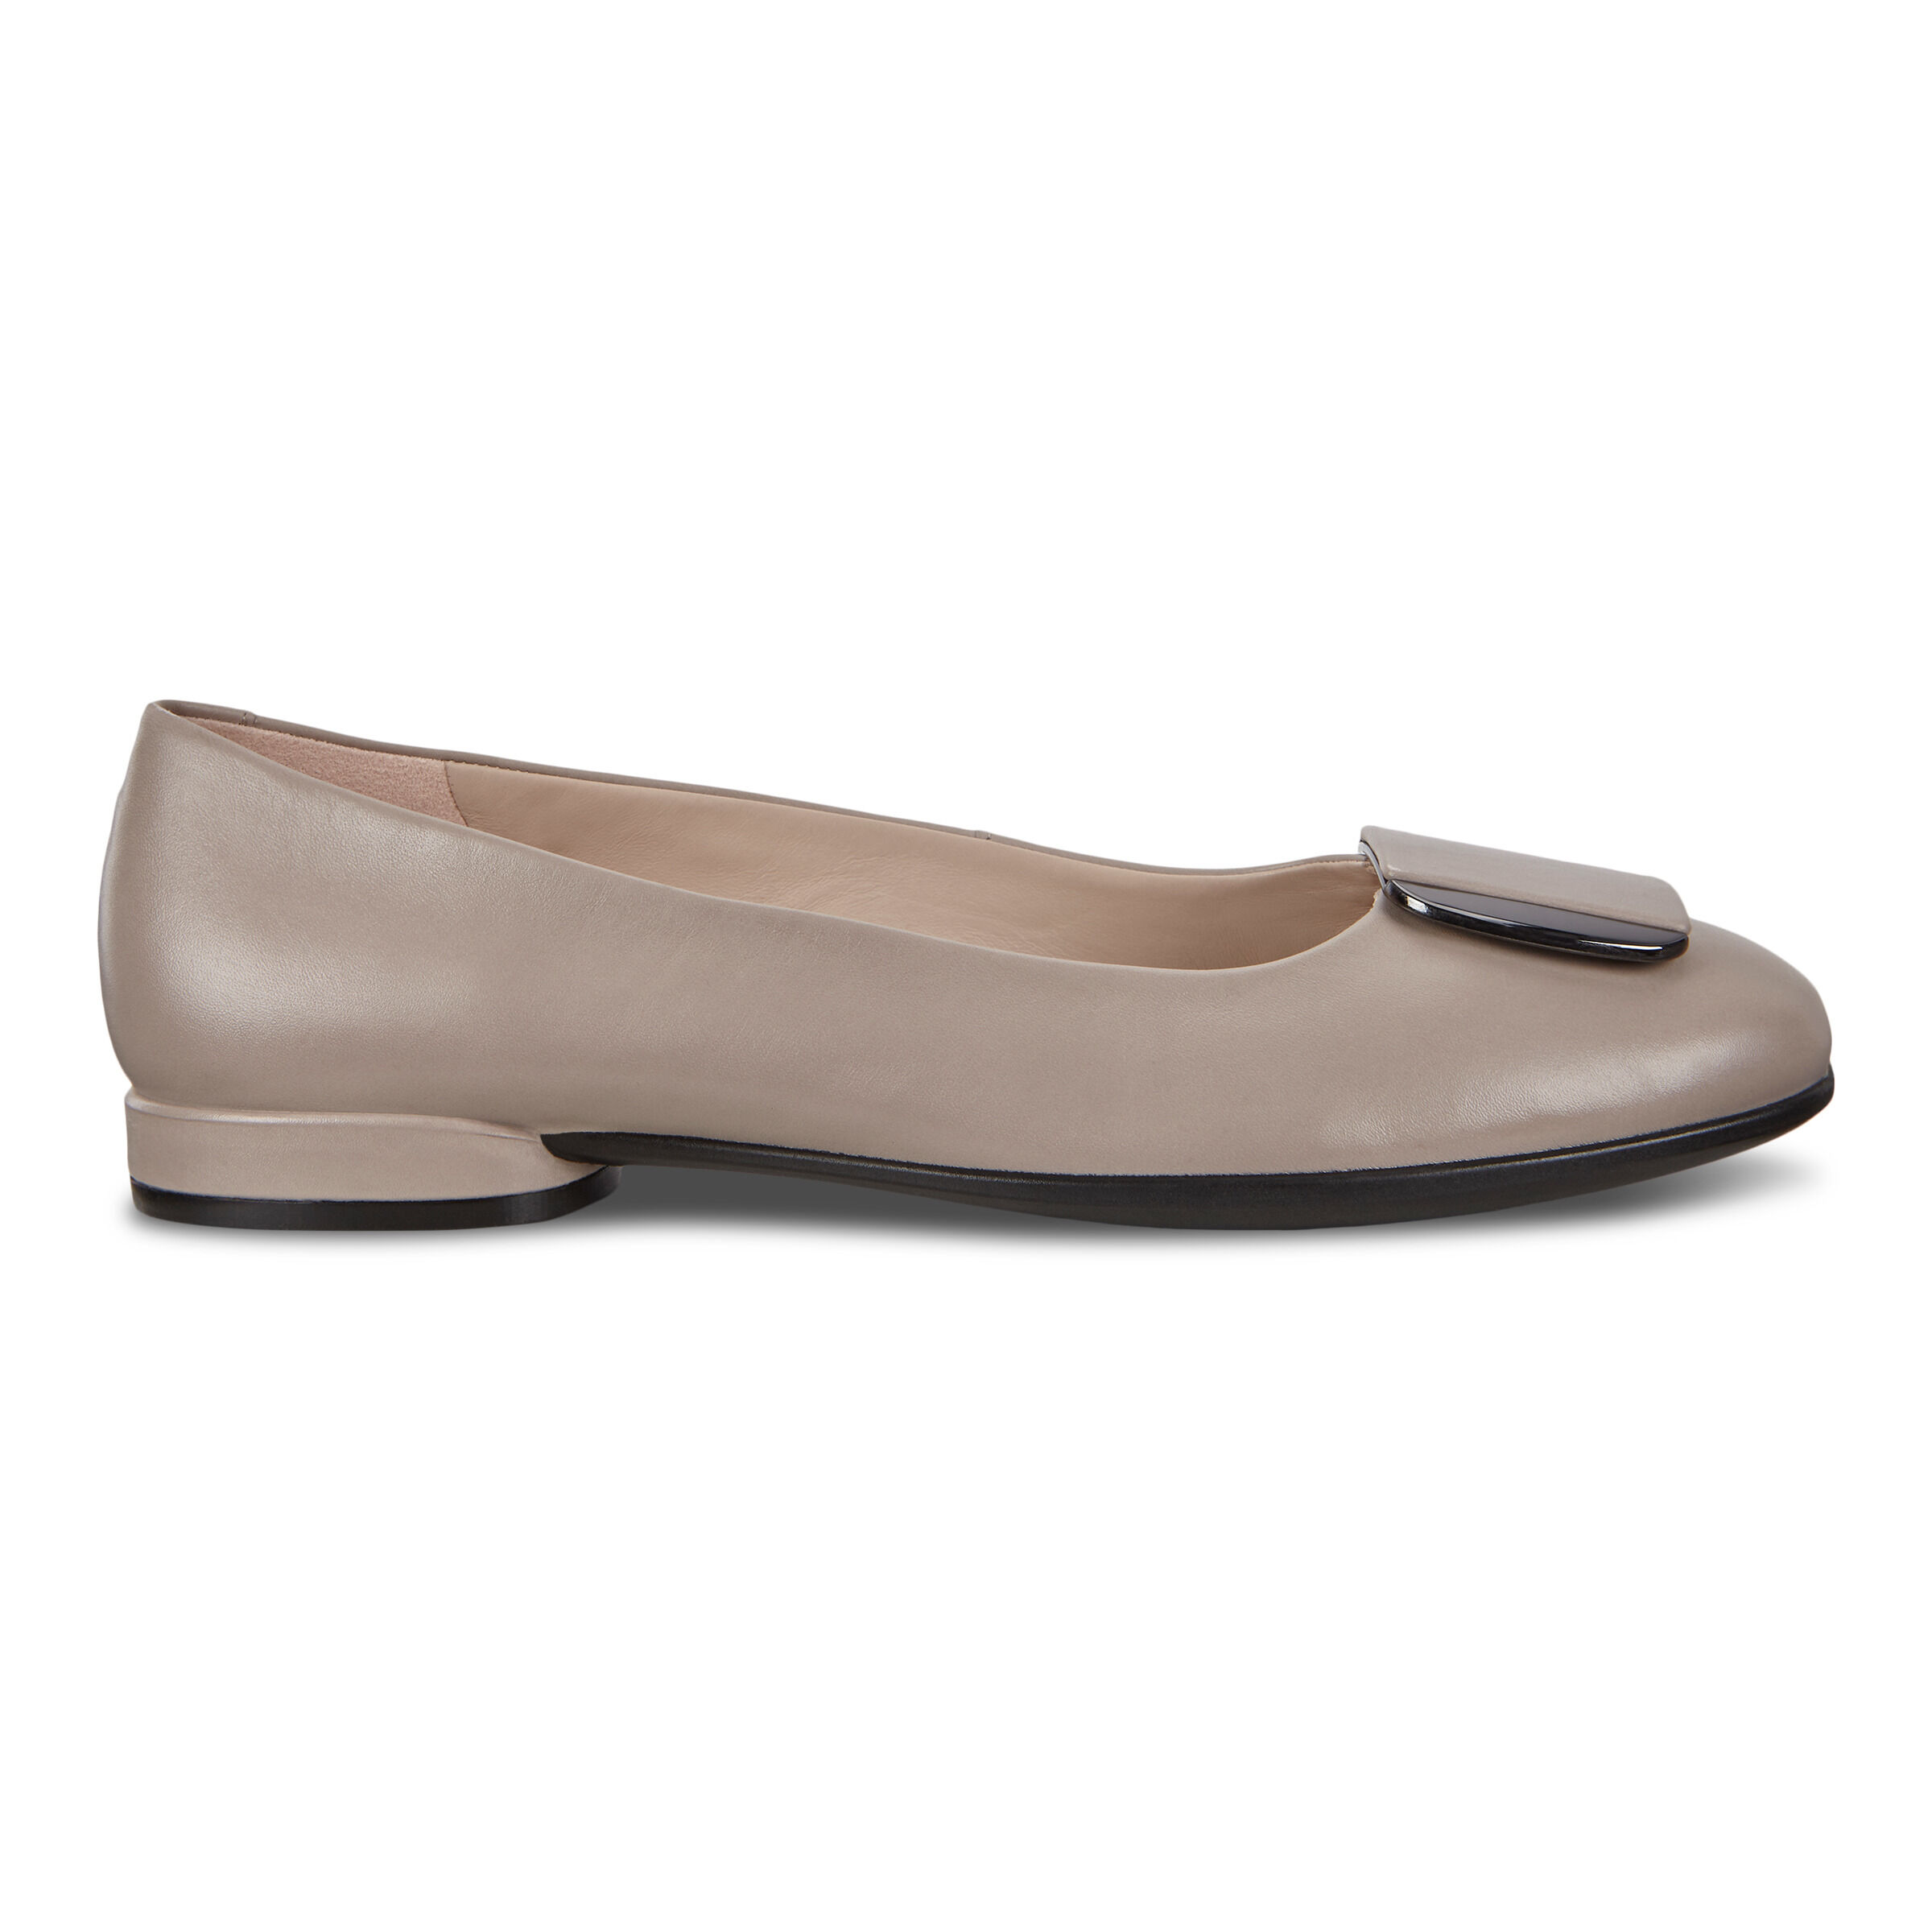 ECCO Anine Ballerina Shoes